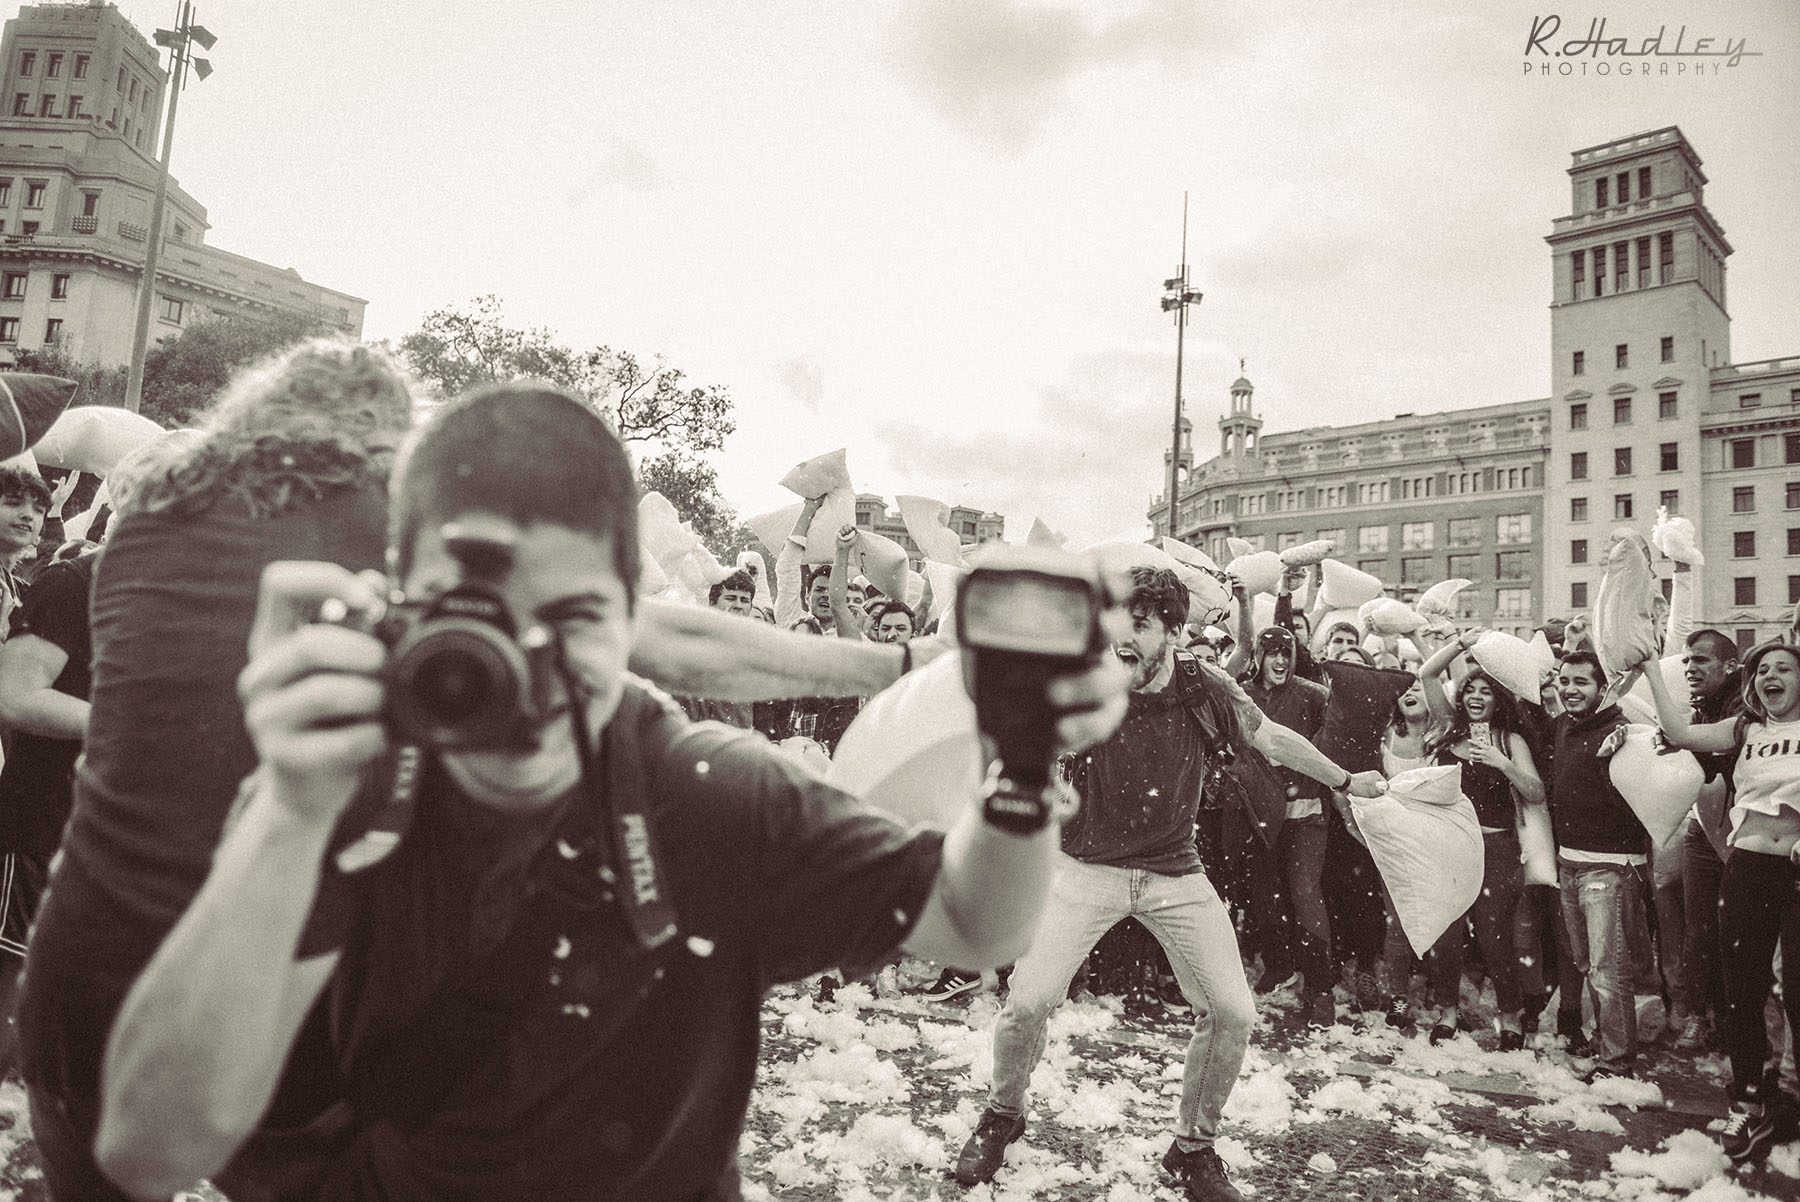 Pillow Fight event in Barcelona